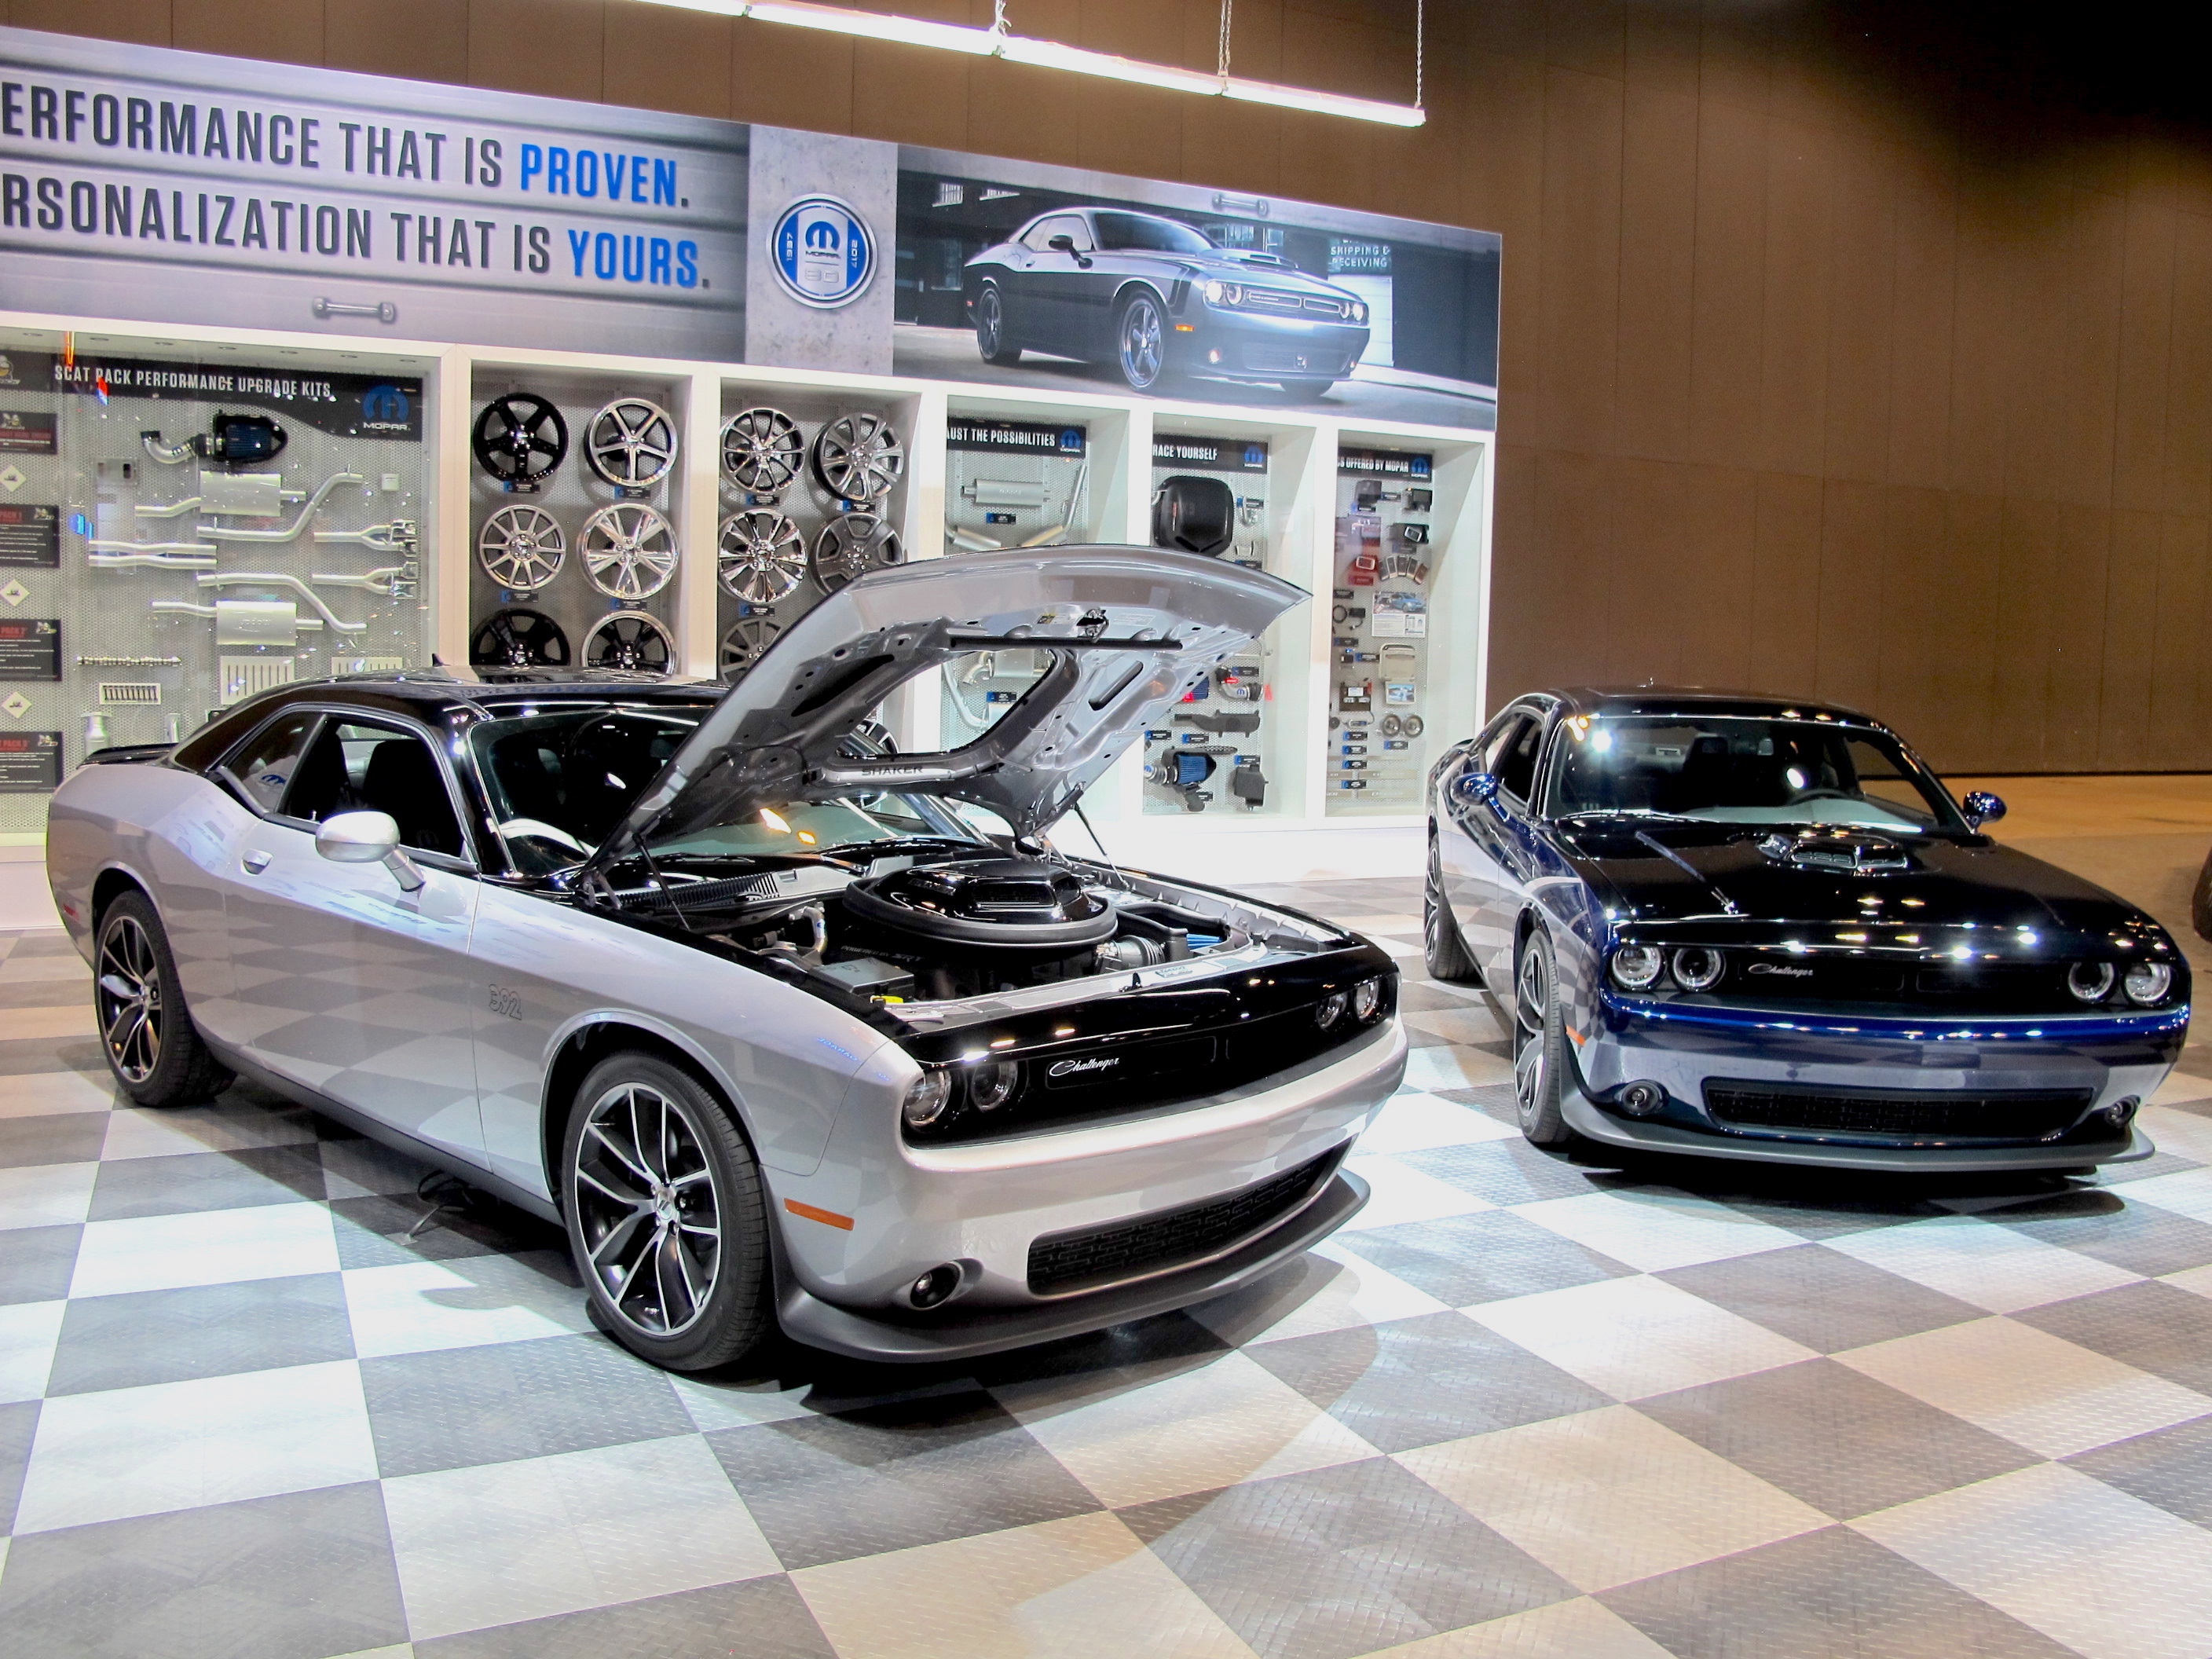 Mopar 17 Dodge Challenger celebrates 80 years of Mopar in two tone